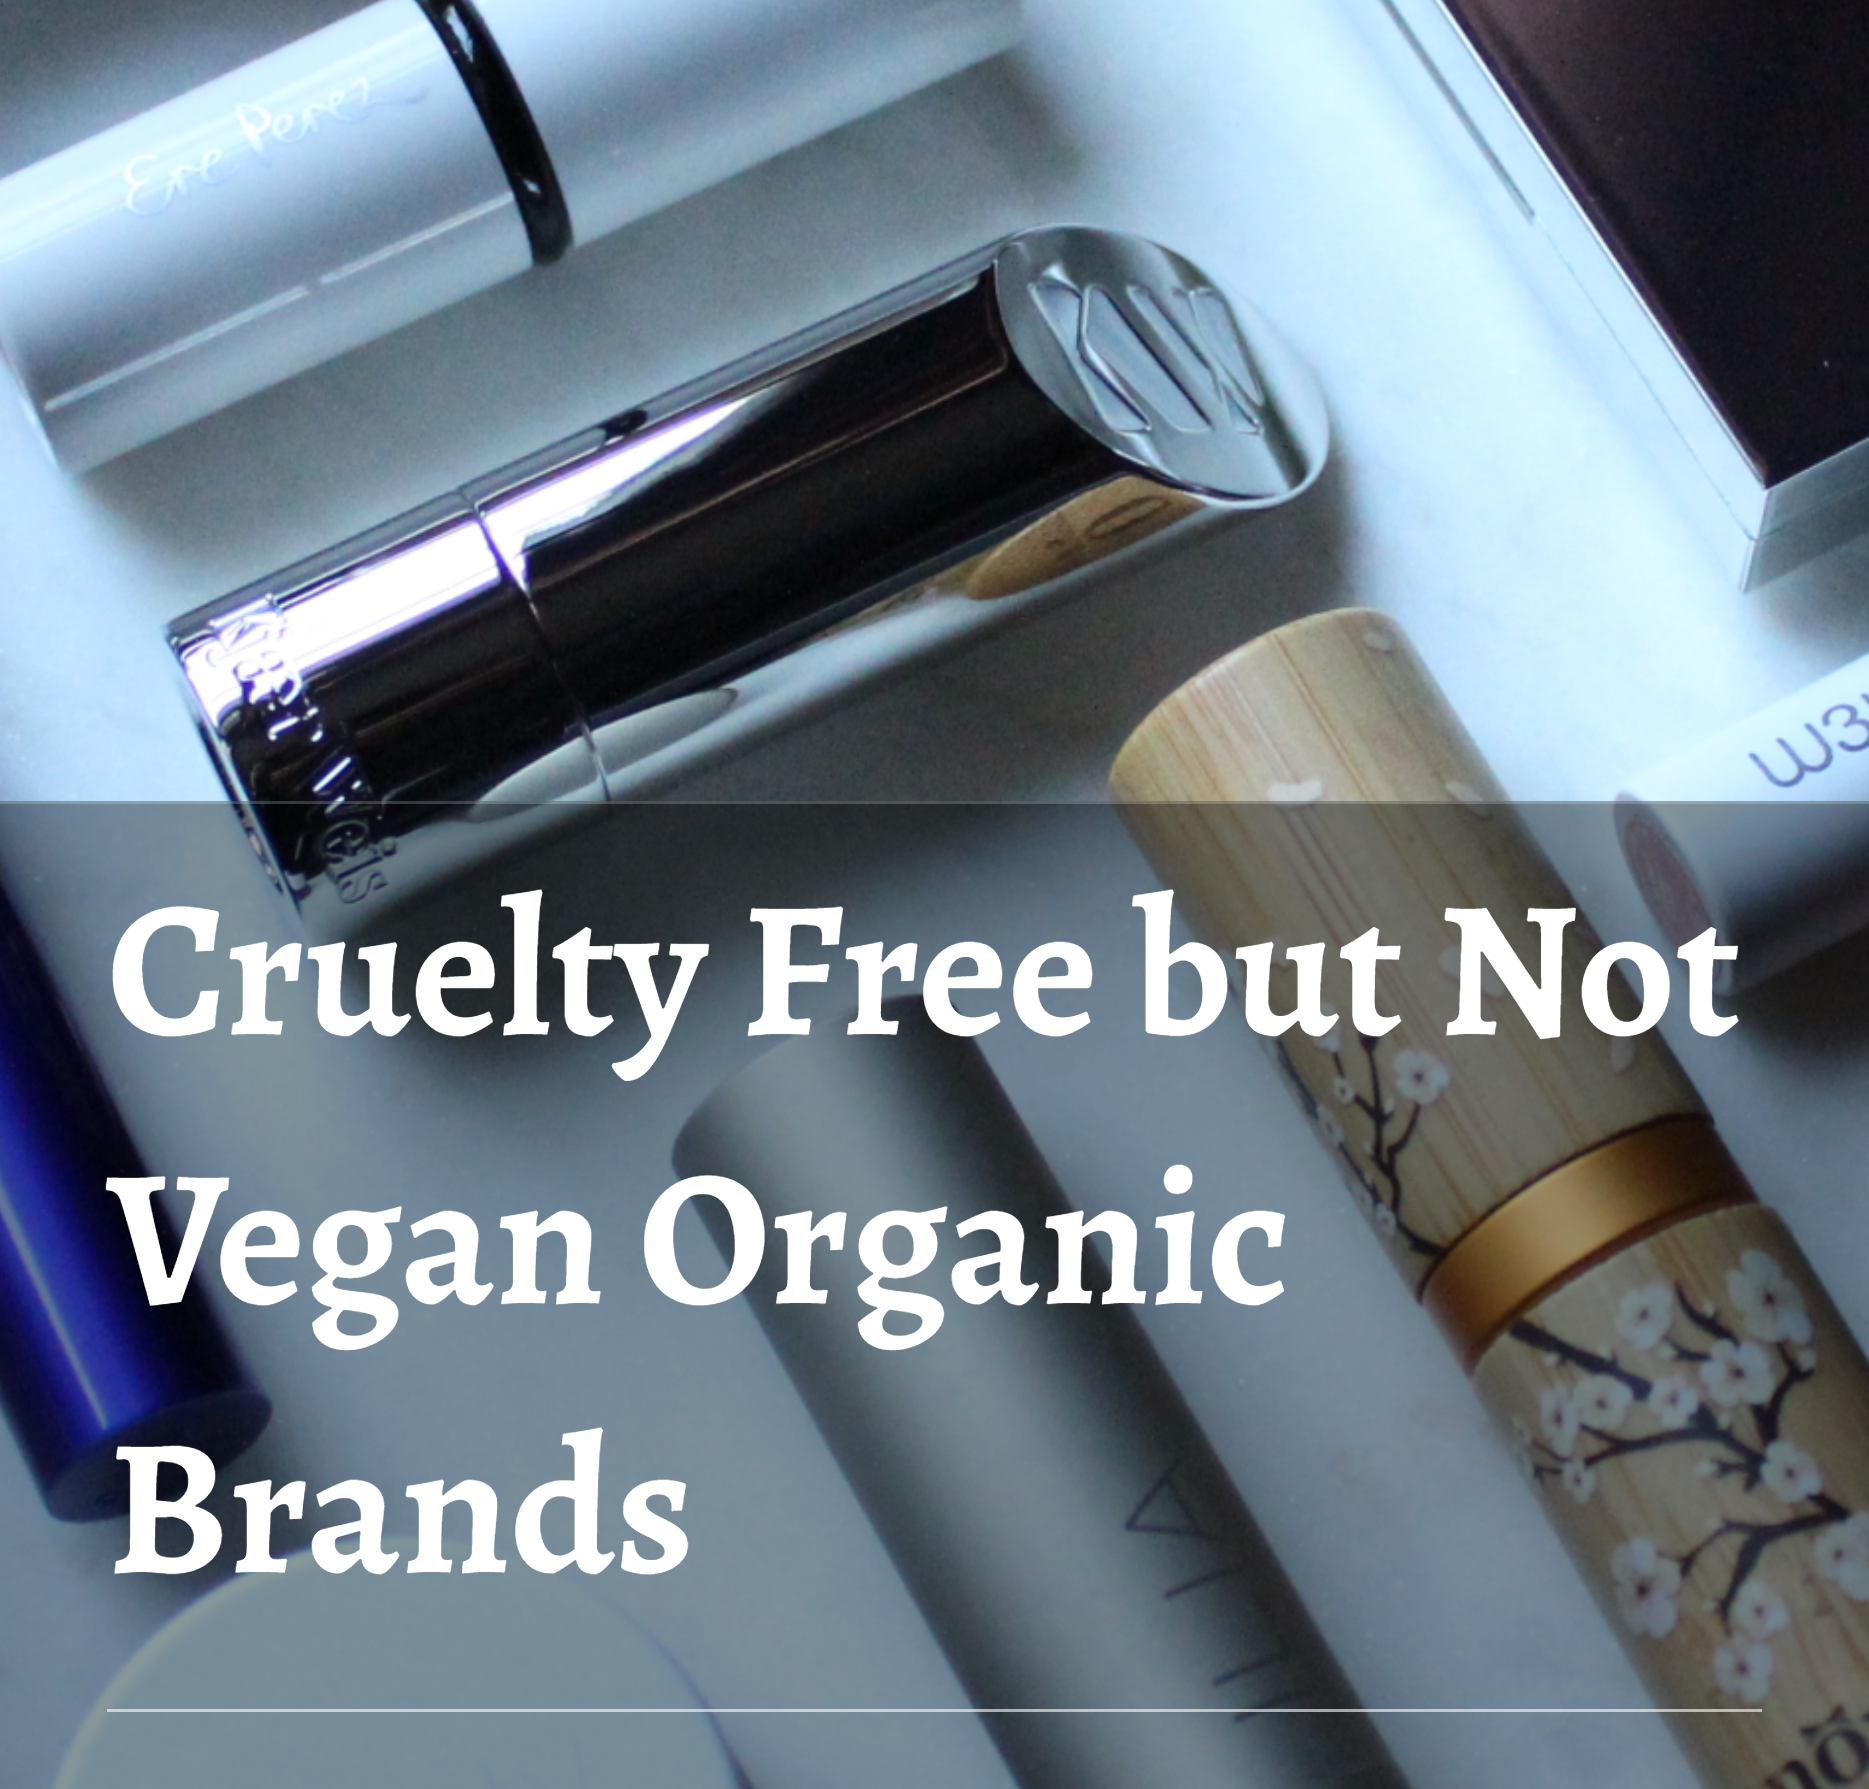 My List of Cruelty Free and Natural Makeup Organic